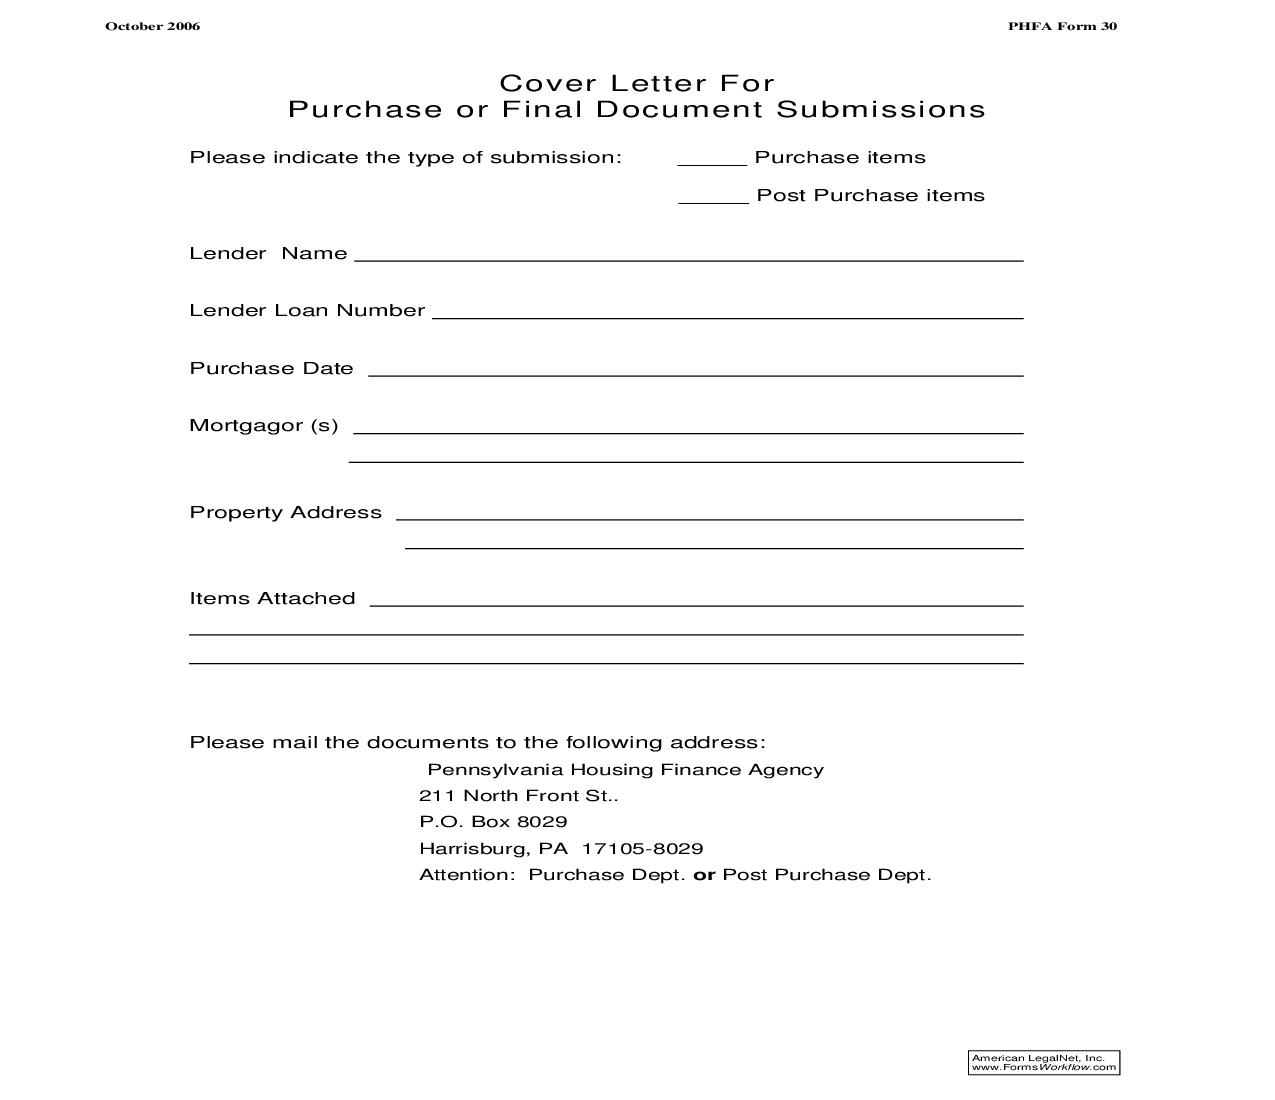 Cover Letter For Purchase Or Final Document Submissions {PHFA-30} | Pdf Fpdf Doc Docx | Sandberg Phoenix